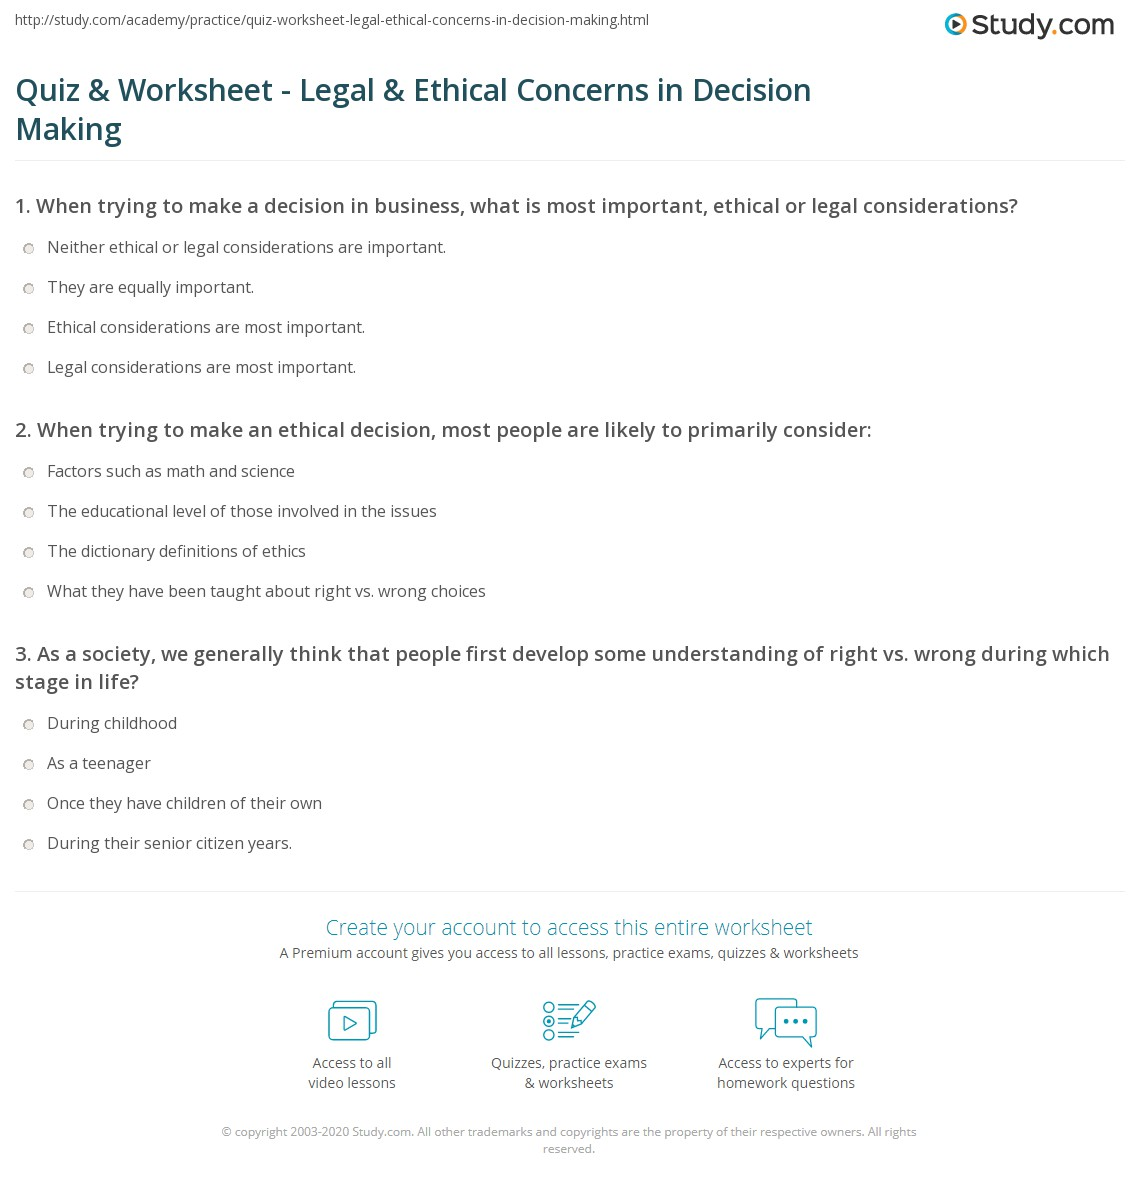 Quiz Worksheet Legal Ethical Concerns In Decision Making